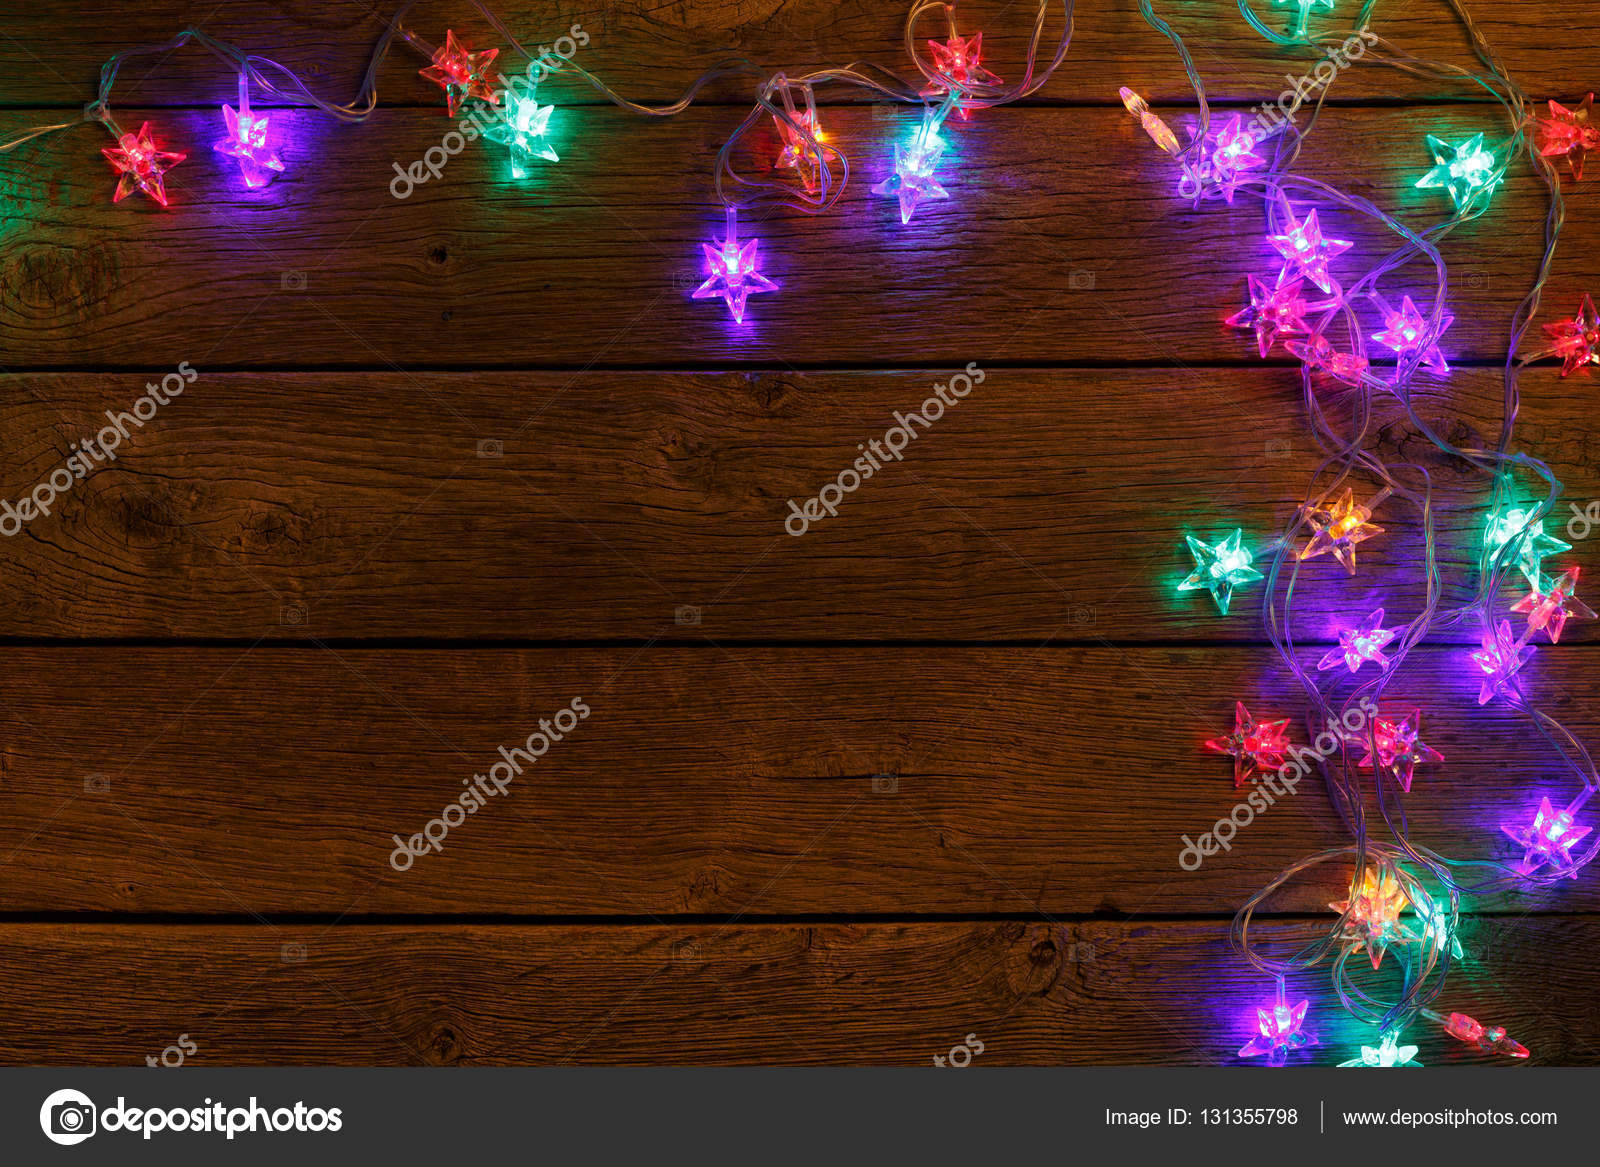 Christmas Lights Background Holiday Shiny Glowing Garland In Star Shape Border Top View With Copy Space On Light Brown Wooden Planks Surface